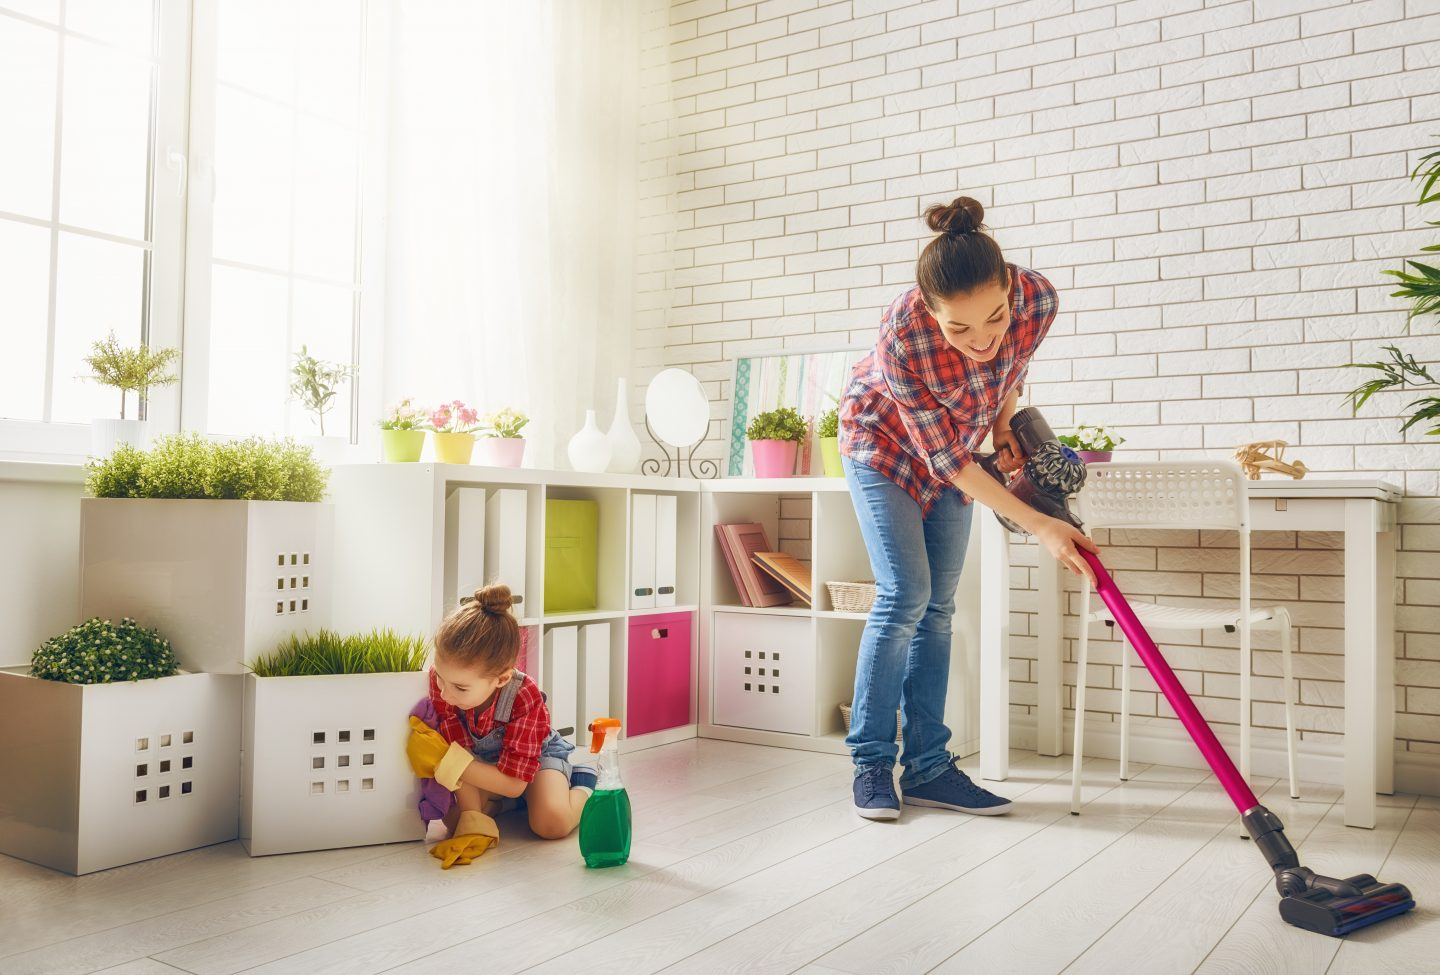 SAHM cleaning routine